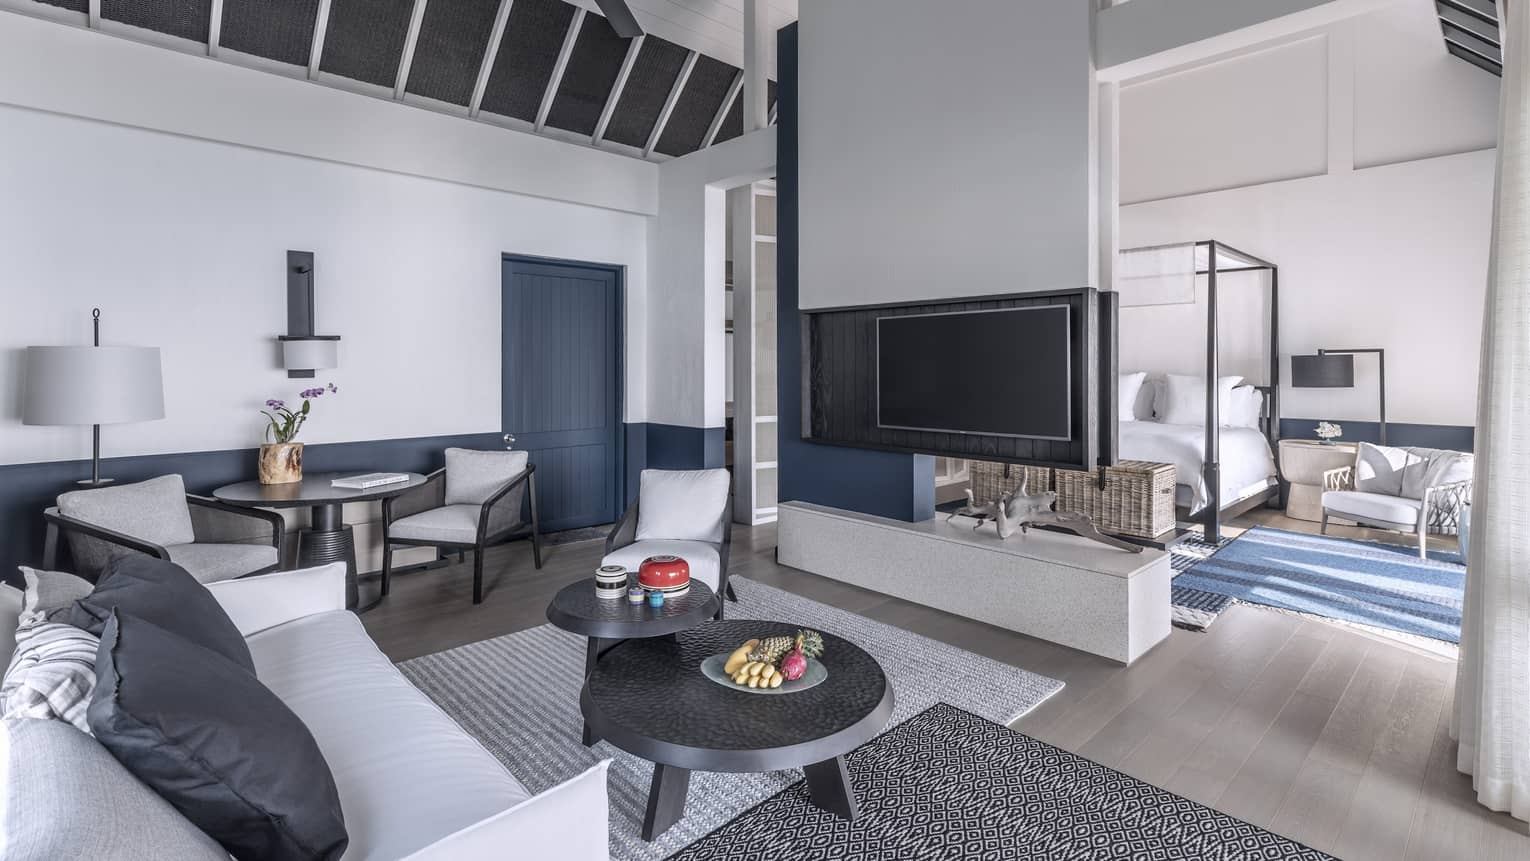 A brightly lit, cozy living room with a television, couch and access to the bedroom